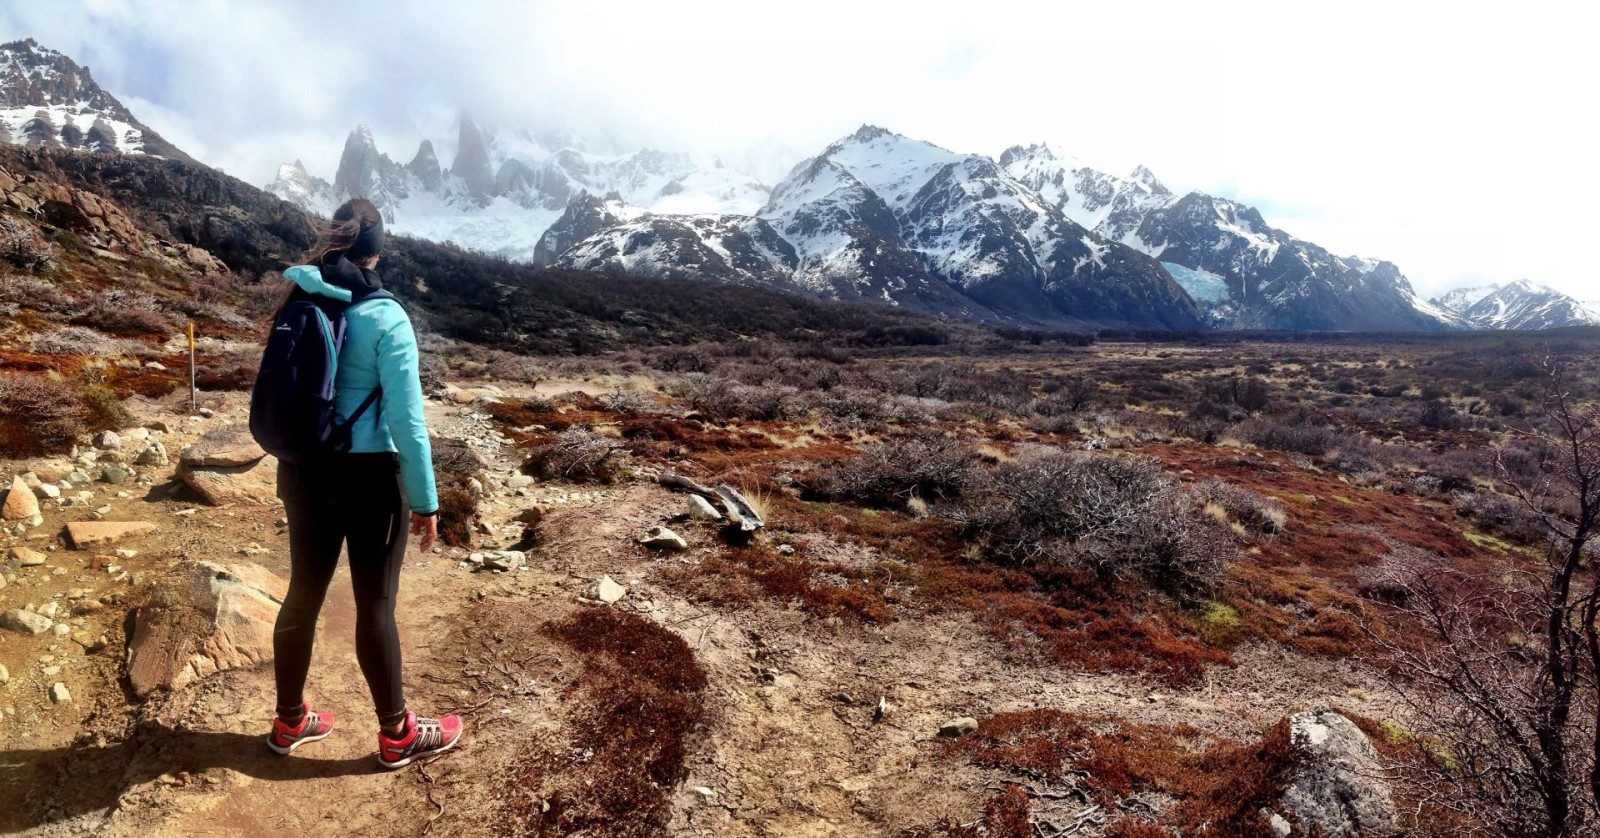 Hiking in El Chalten, Patagonia, Argentina